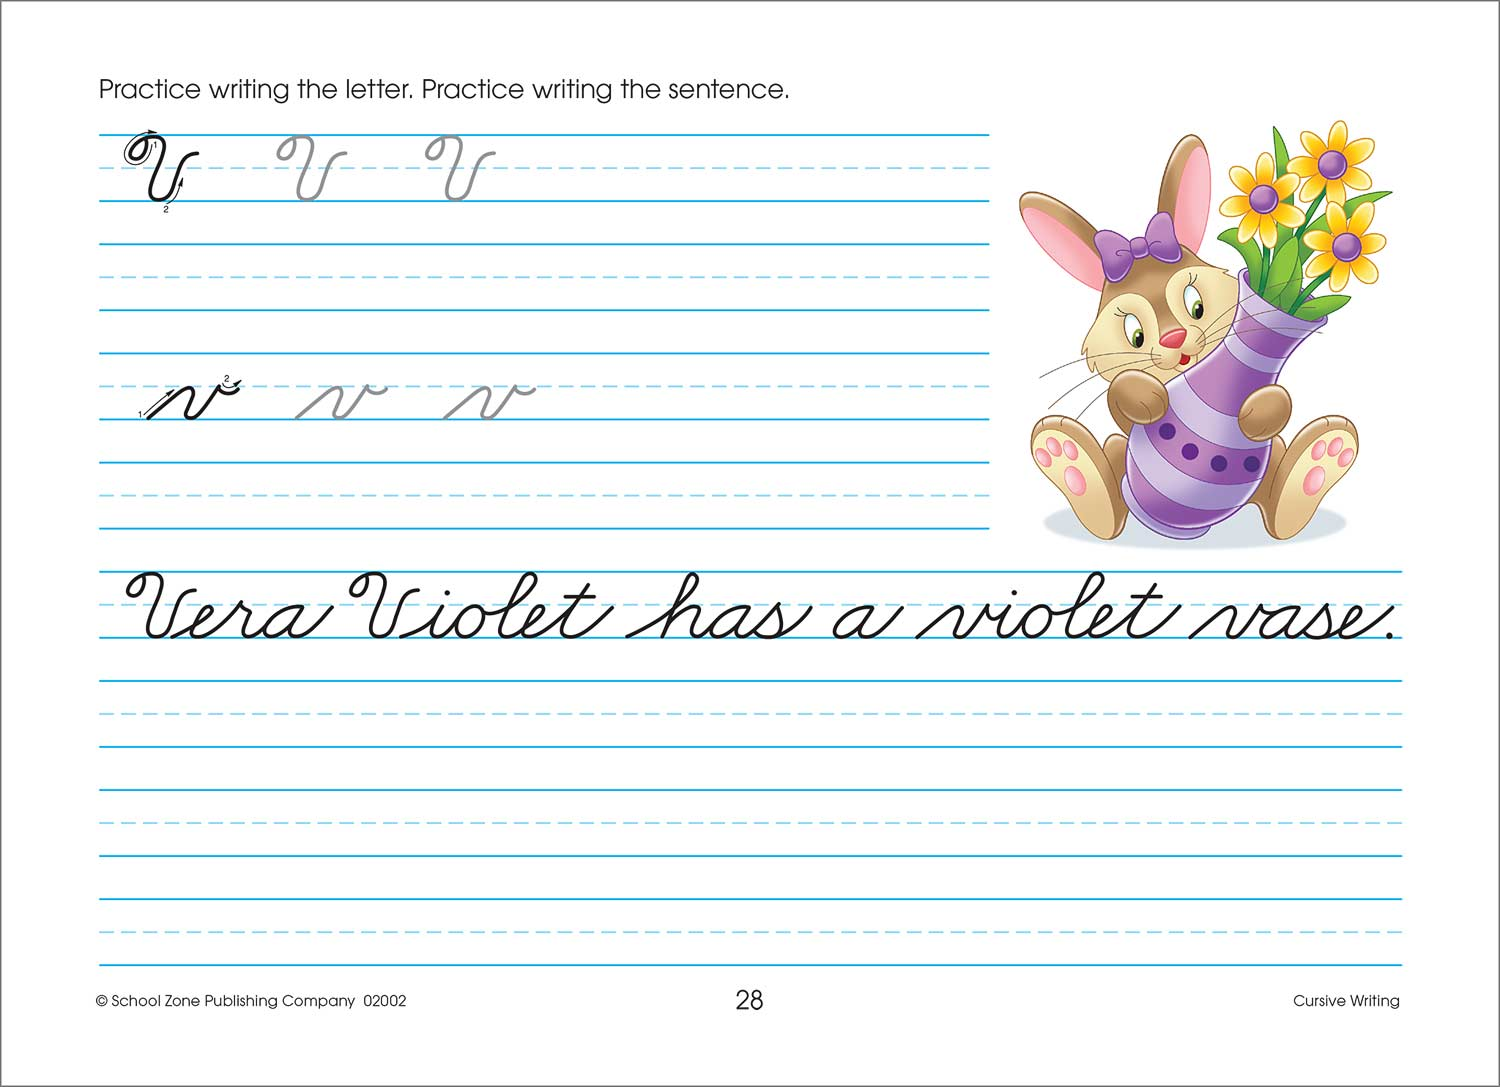 Workbooks big third grade workbook : Third and Fourth Grade Workbooks | Cursive Writing - Raff and Friends